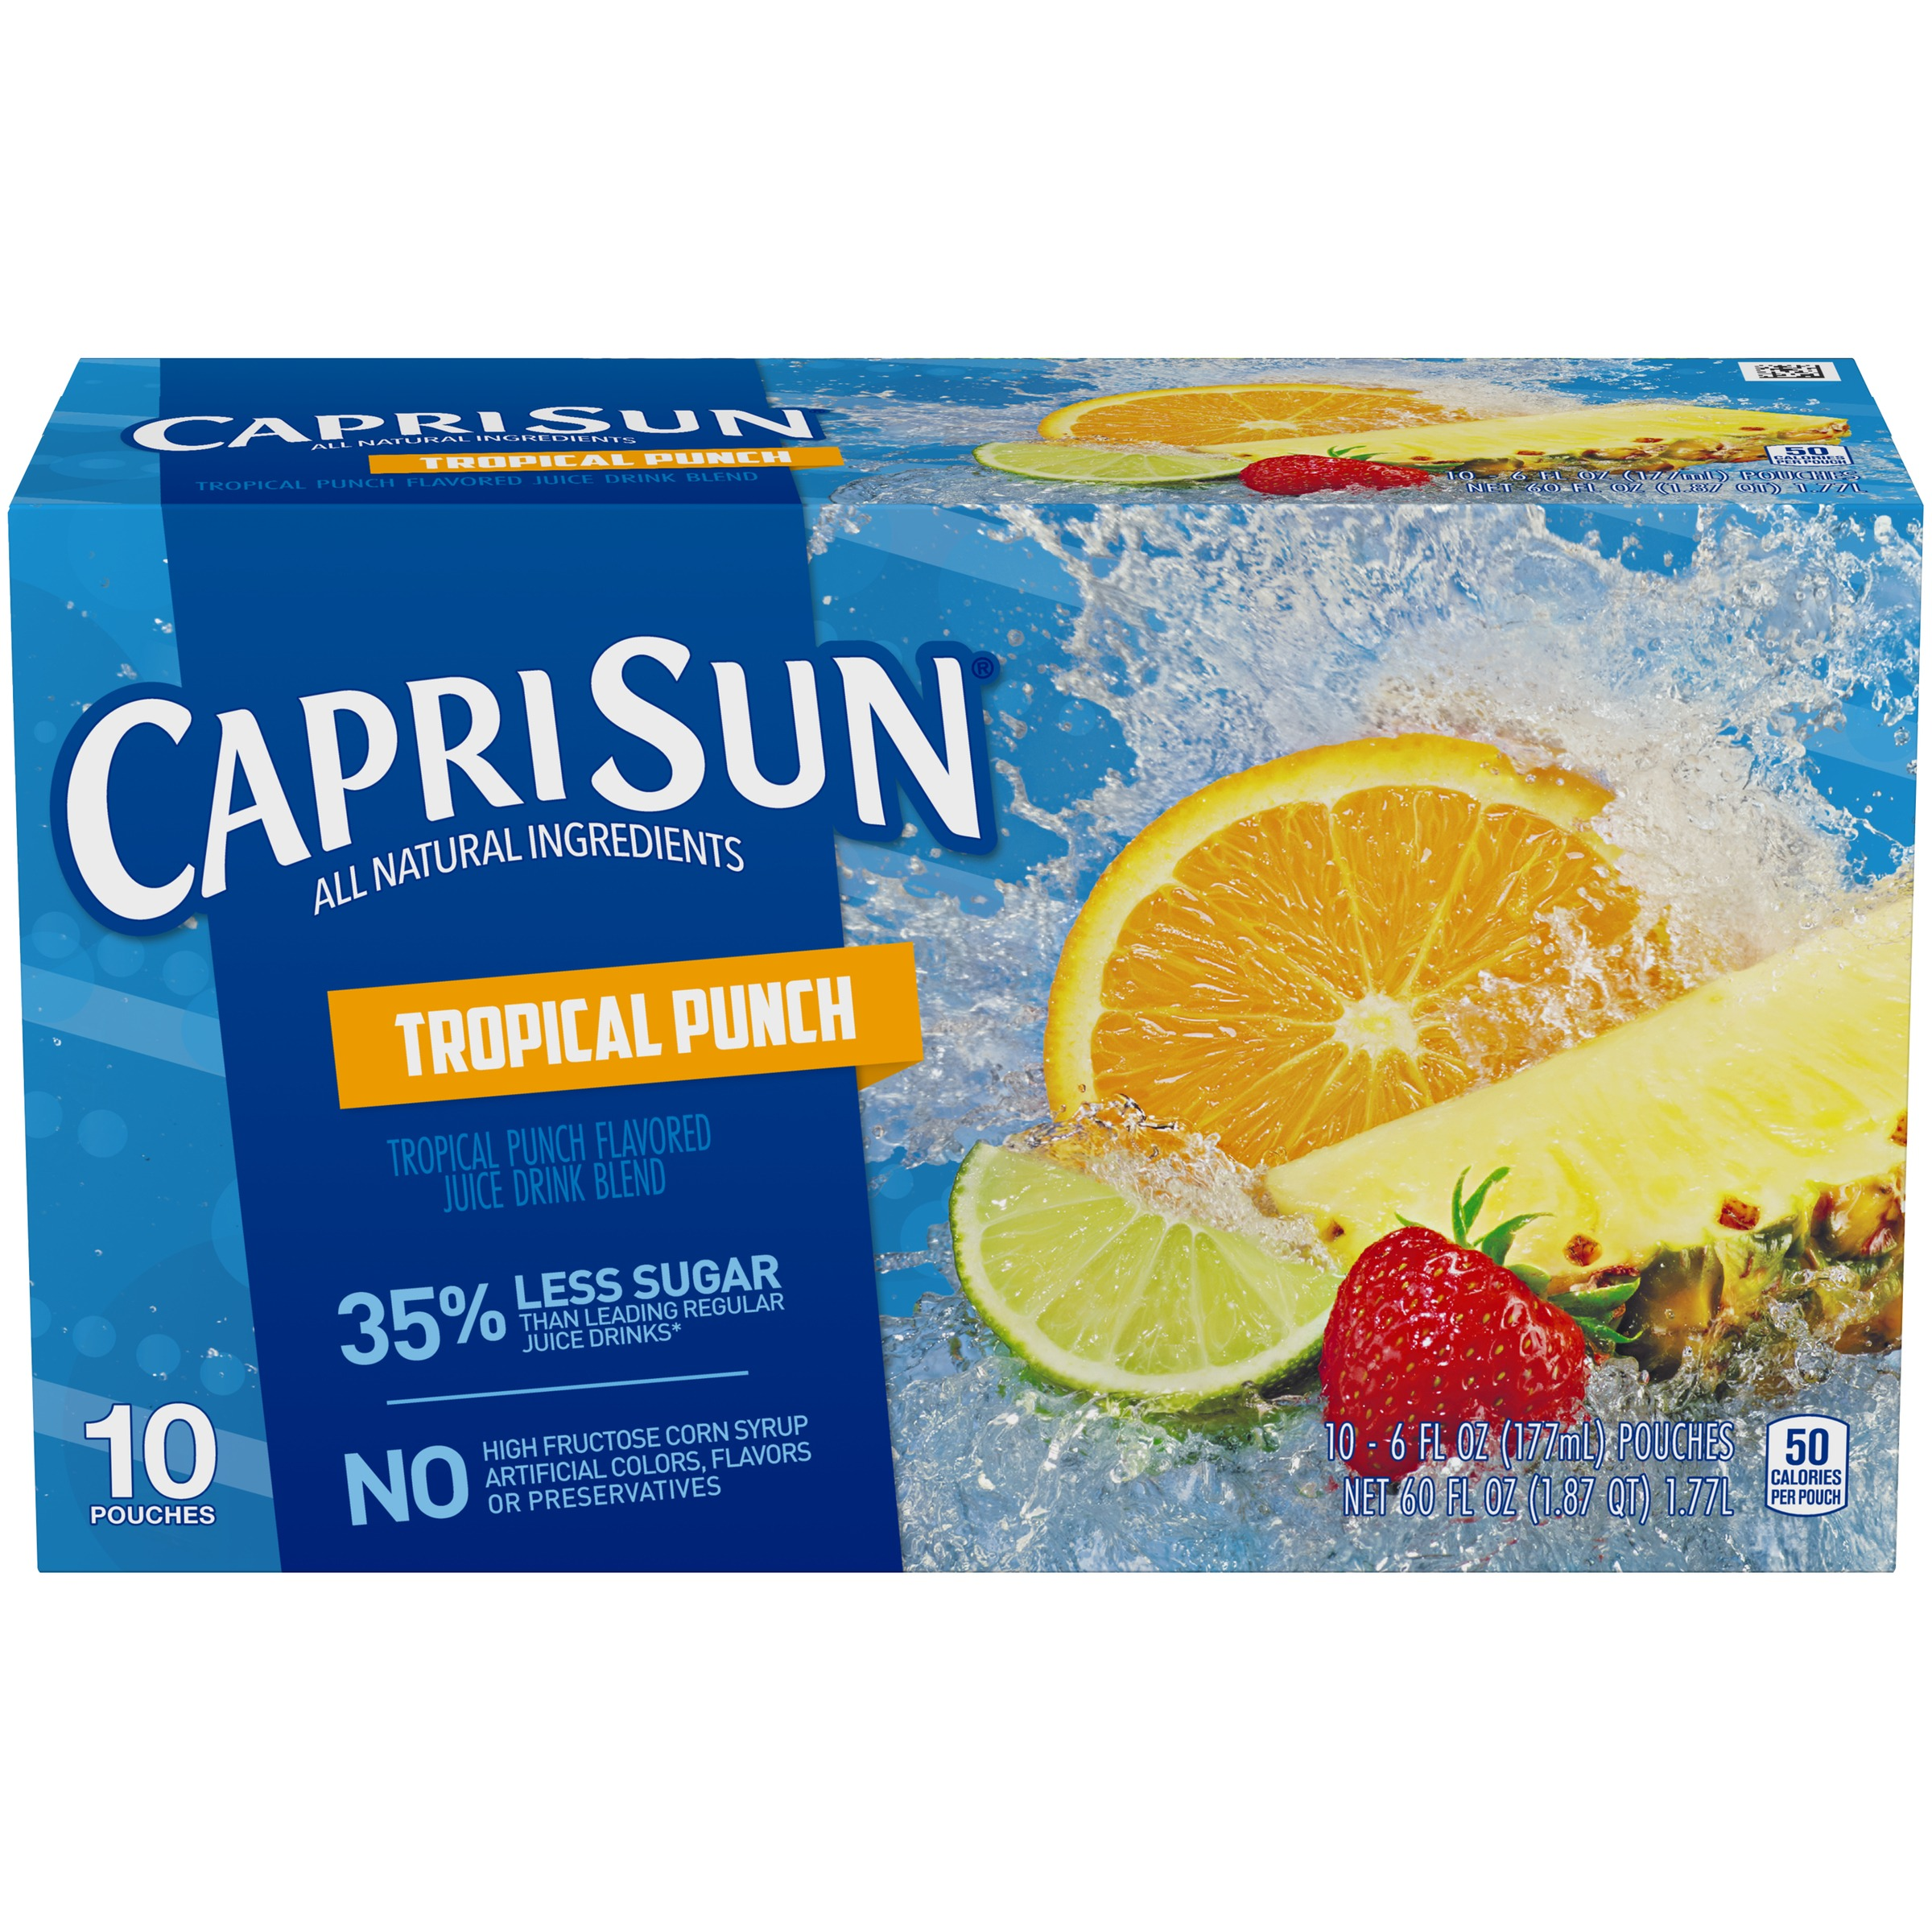 Capri Sun Tropical Punch Ready-to-Drink Soft Drink, 10 - 6 fl oz Pouches